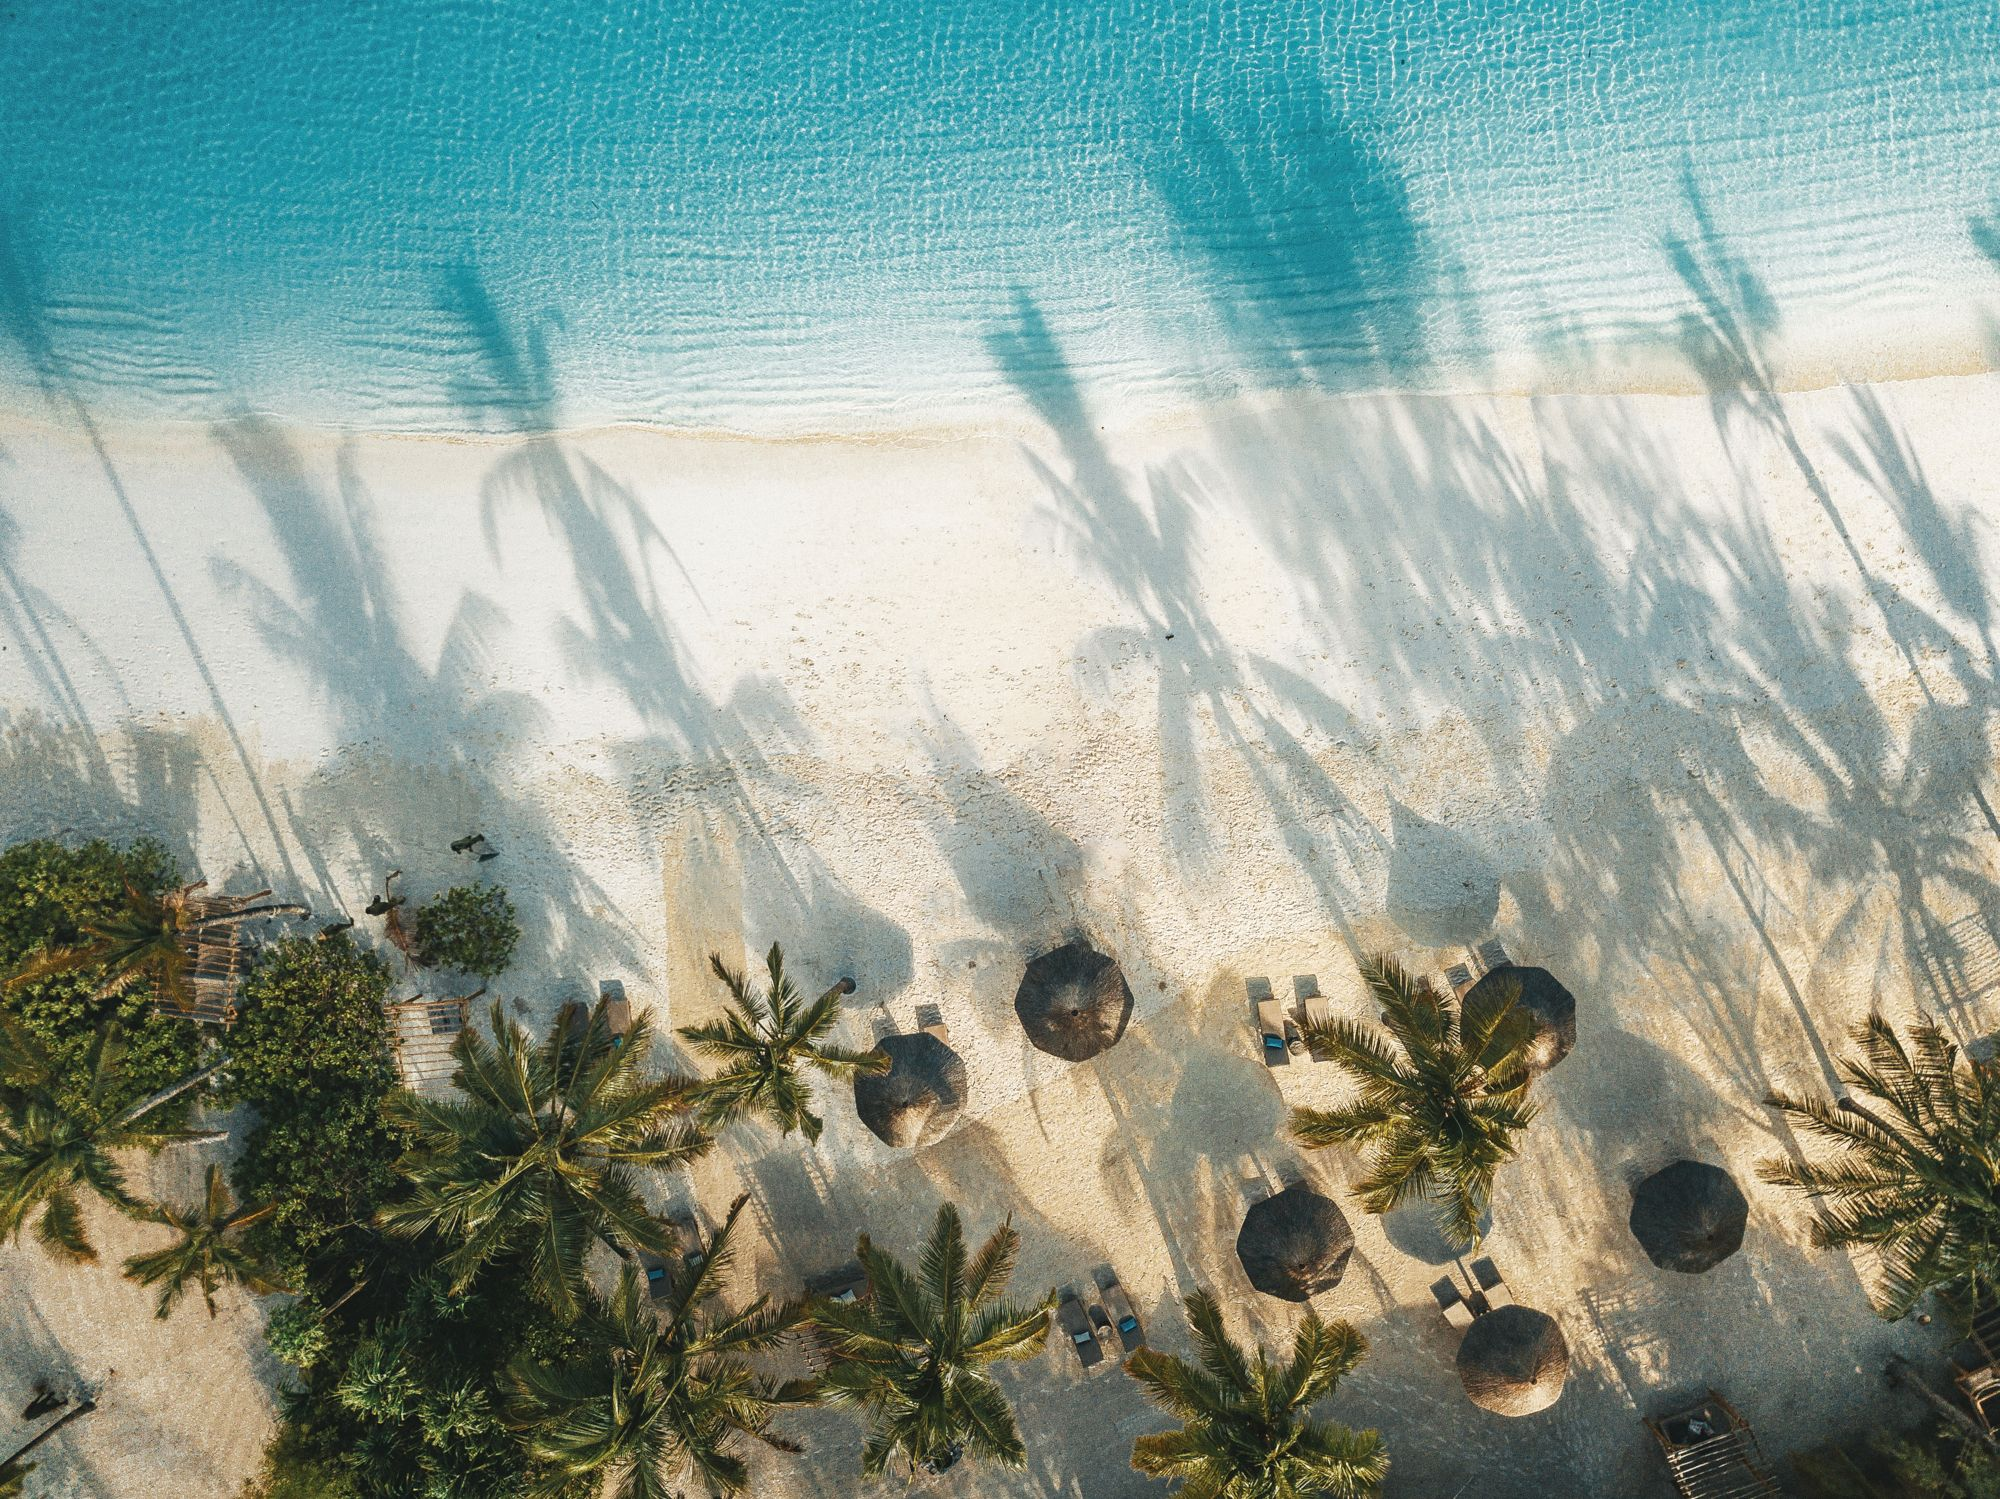 Discover Zanzibar: Where to Stay, Eat and Visit According To Travel Photographer Aline Coquelle